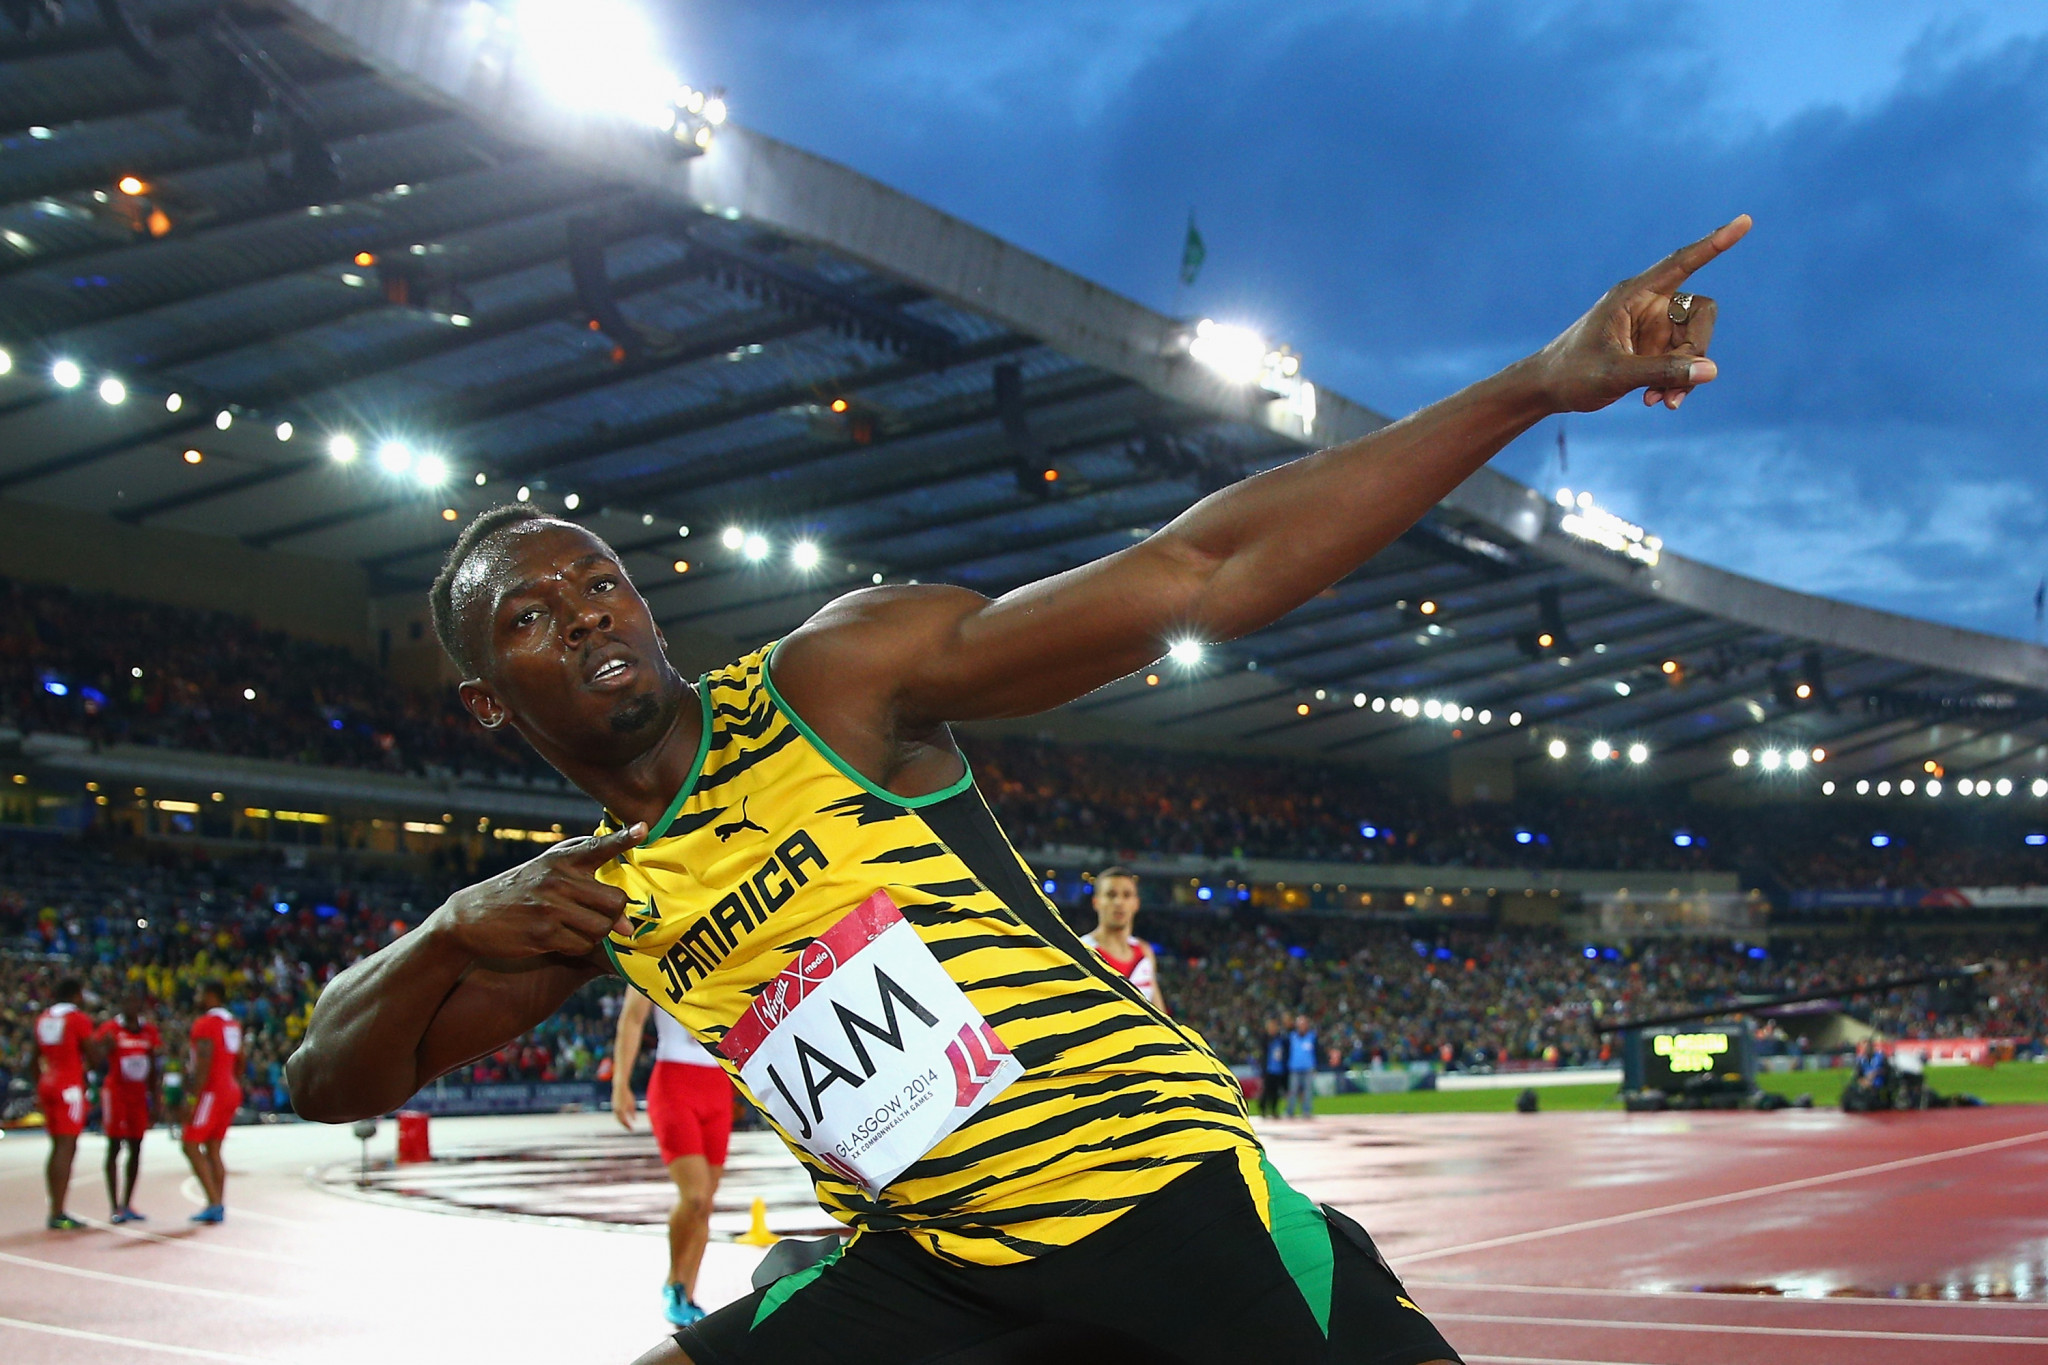 Jamaican sprinting superstar Usain Bolt was a star name at the Glasgow 2014 Commonwealth Games ©Getty Images